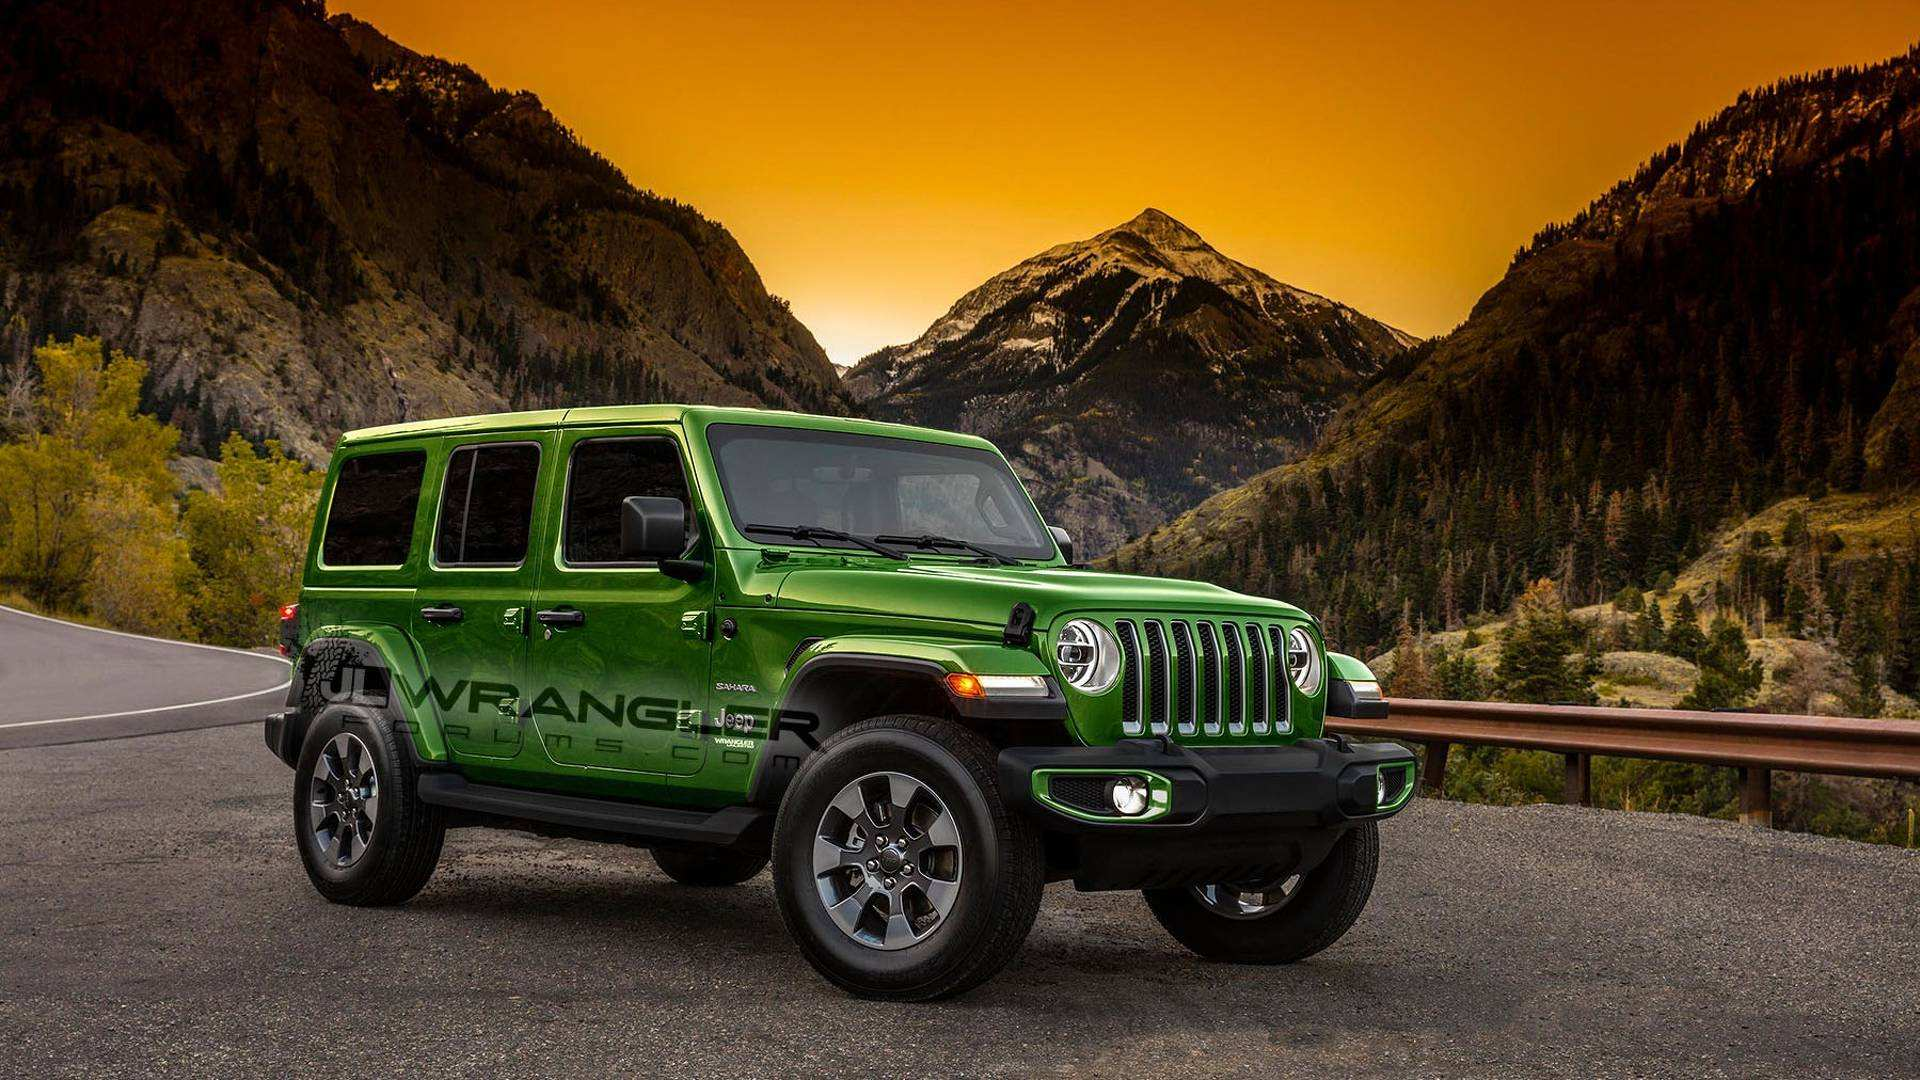 52 All New 2020 Jeep Wrangler Unlimited Rubicon Colors Review And Release Date